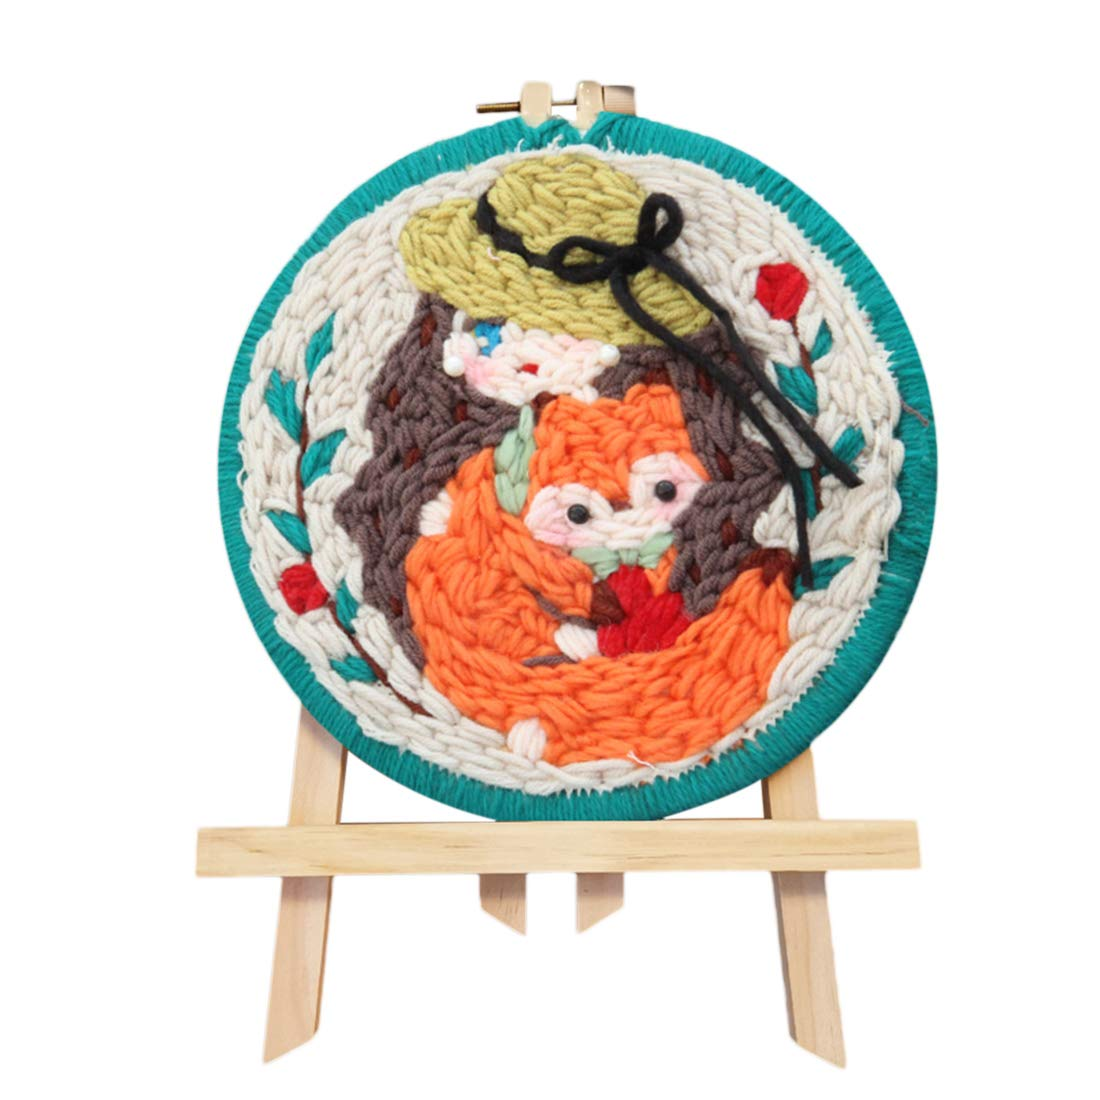 Carrot Embroidery Frame and Holder FenglinTech Rug Hooking Kit DIY Handcraft Latch Hook Kits with Punch Needle Rug Hooking Tool